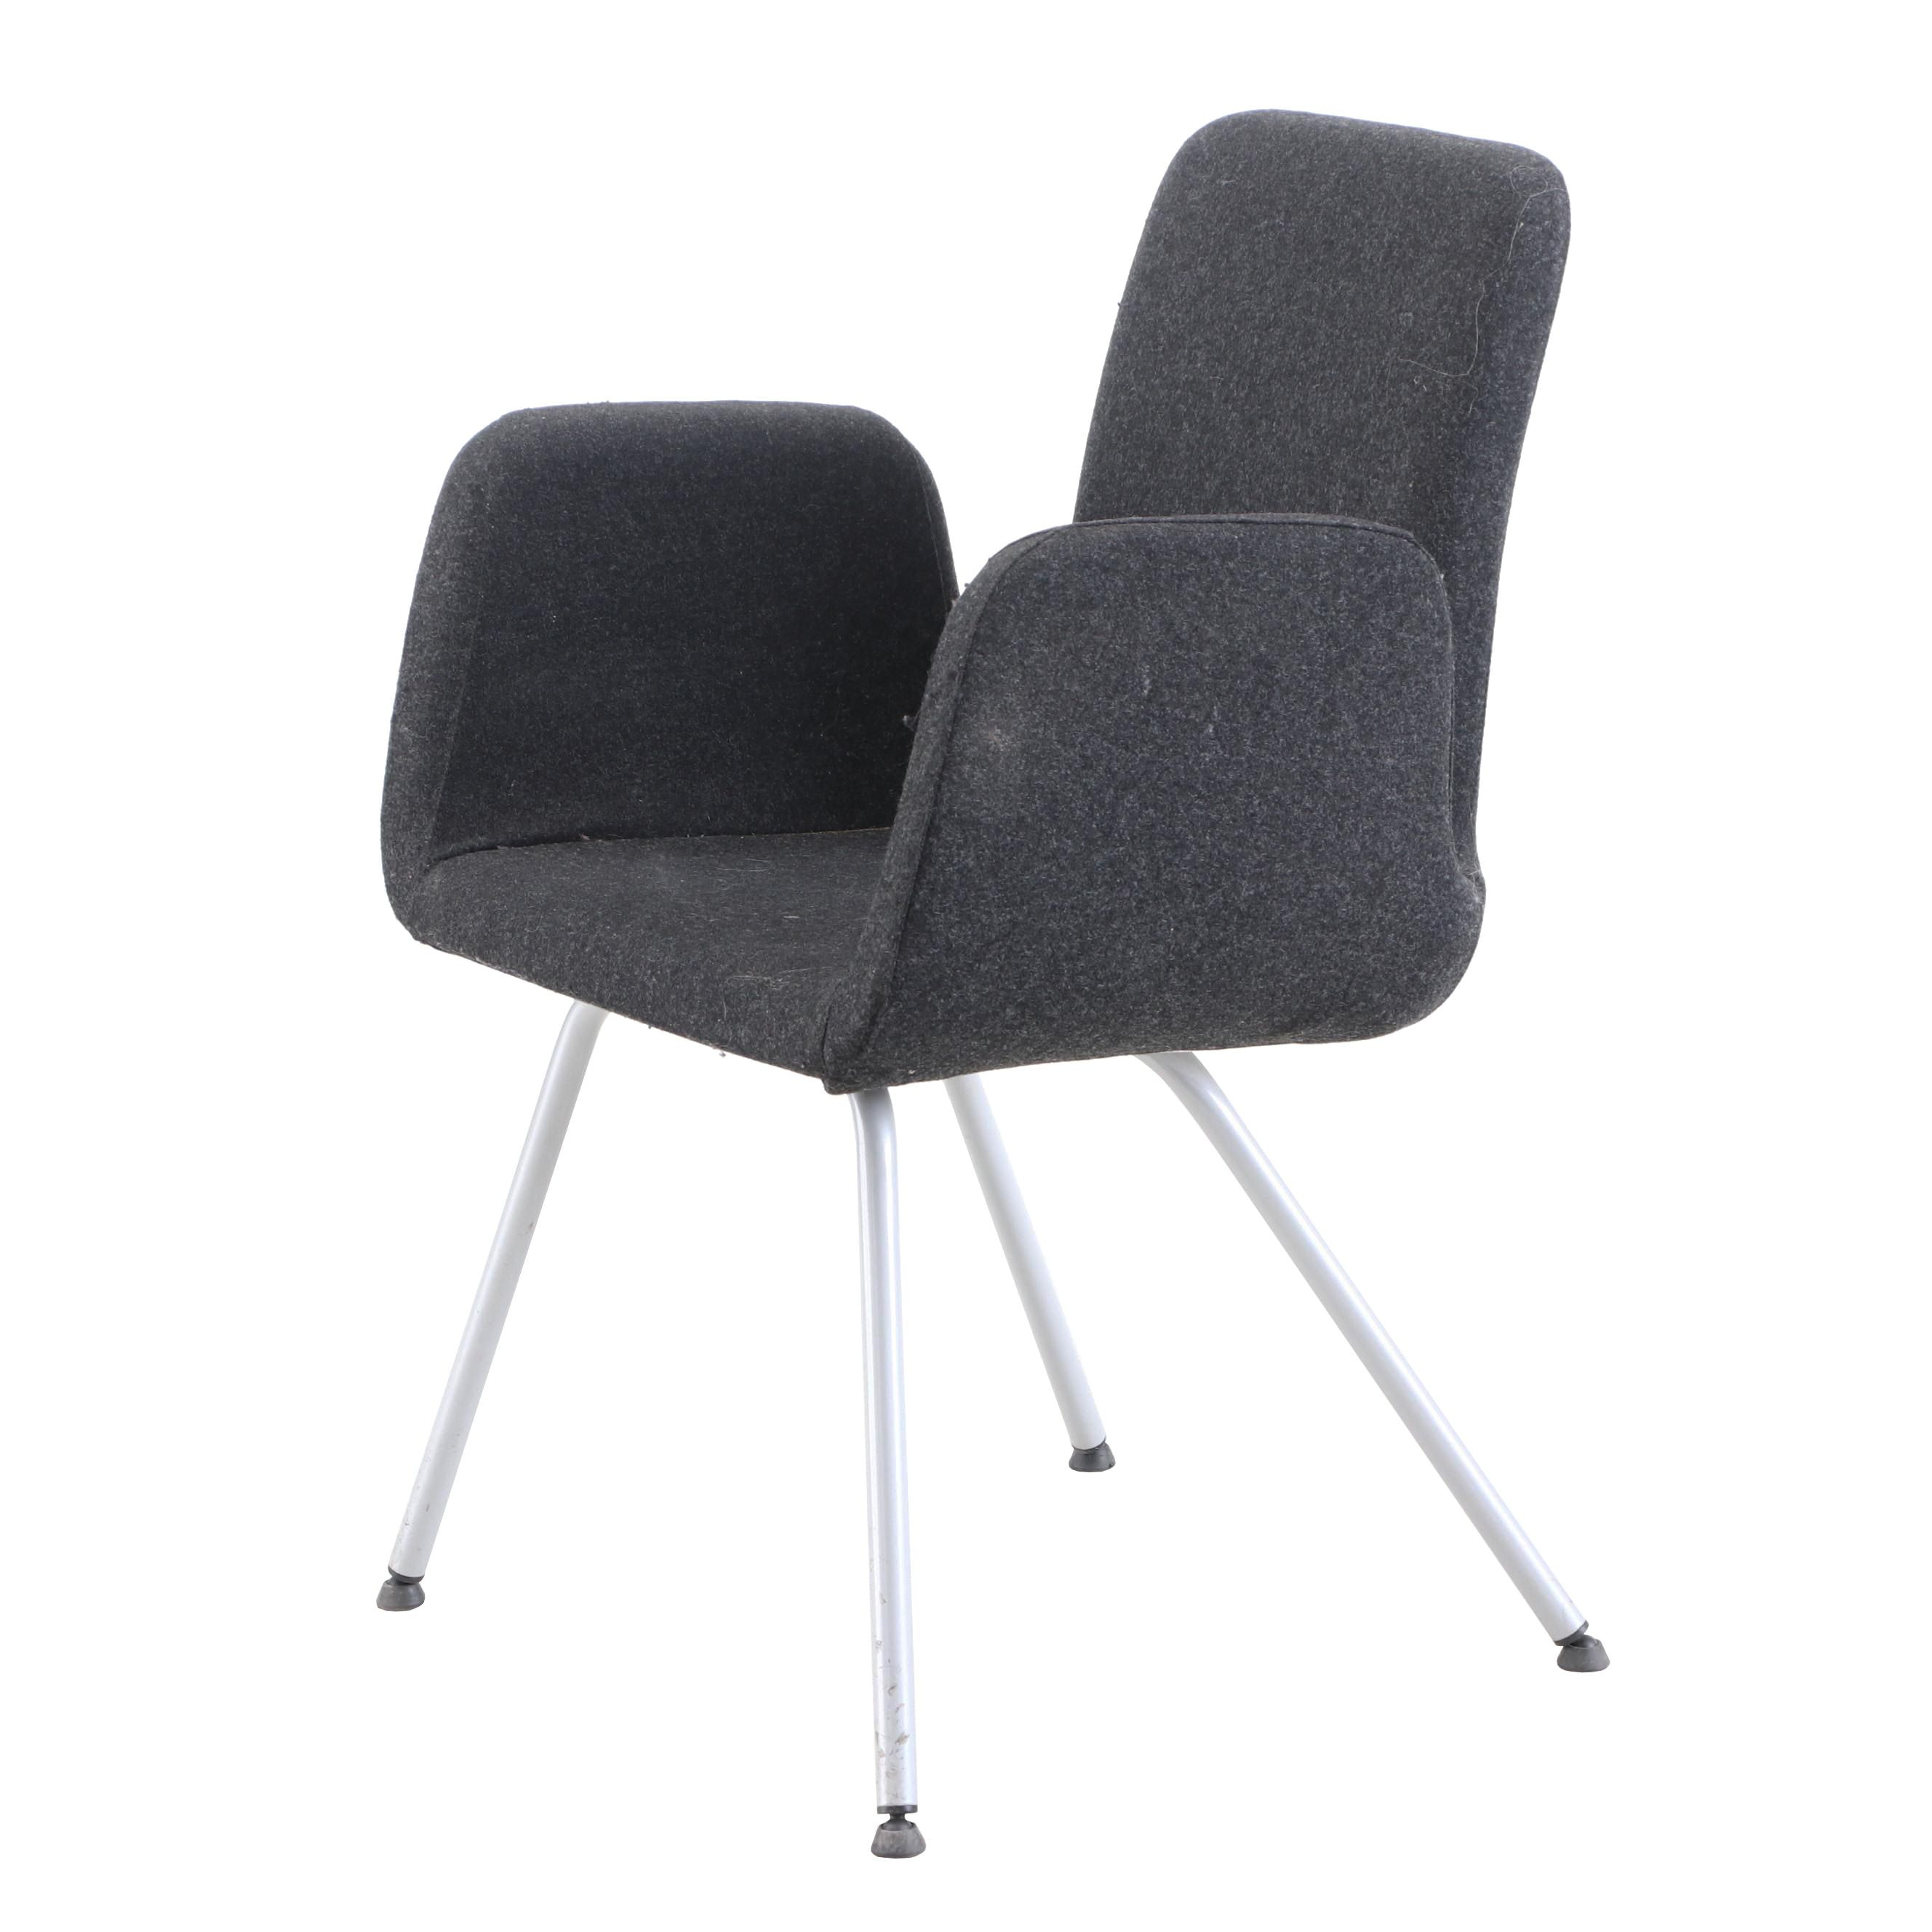 "IKEA ""Patrik"" Desk Chair with Wool Upholstery in Gray"